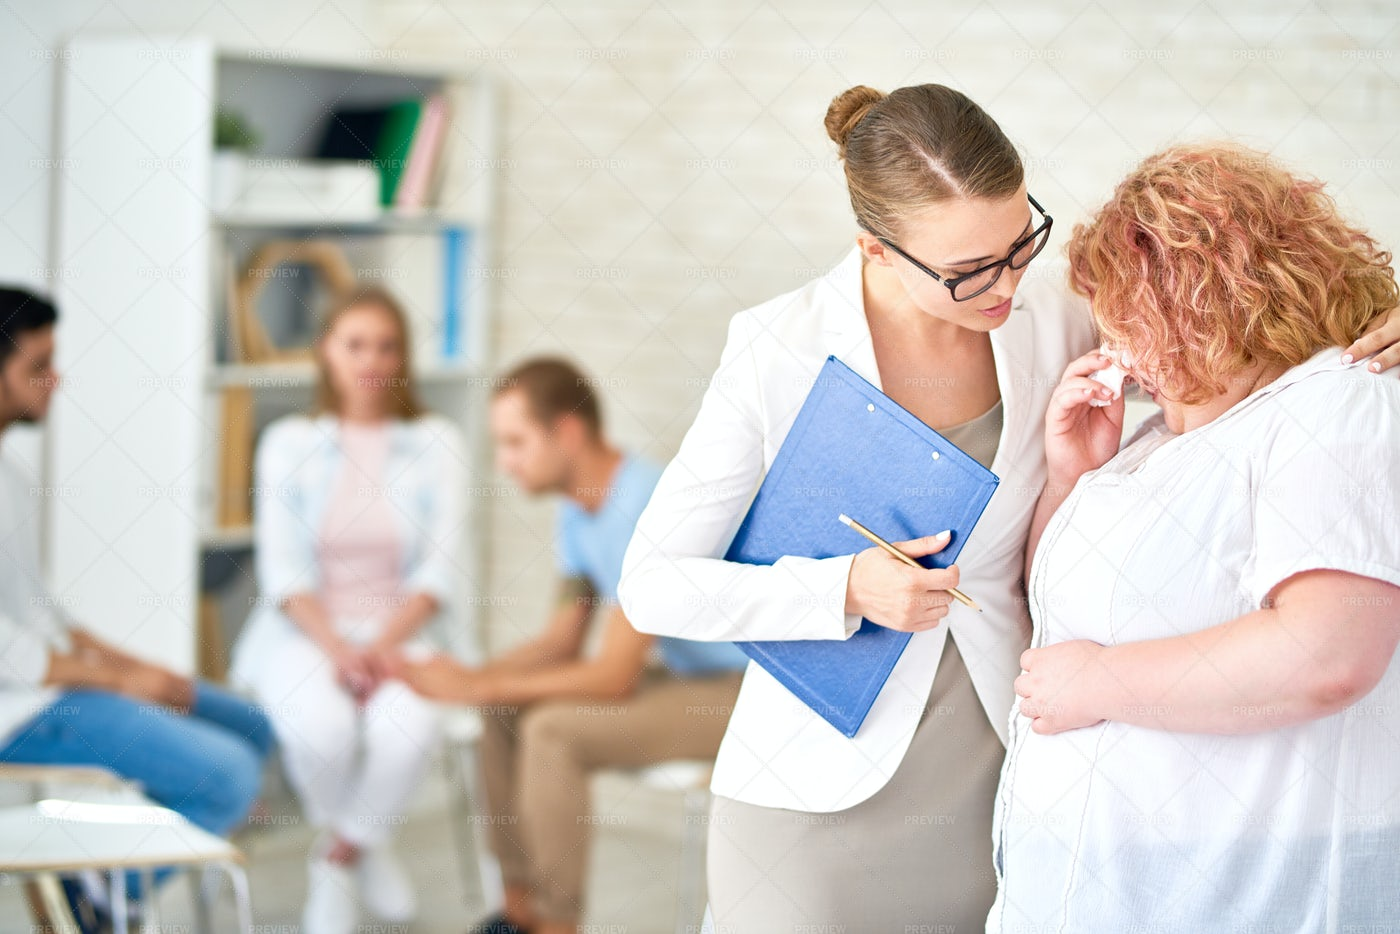 Obese Woman Talking One On One With...: Stock Photos